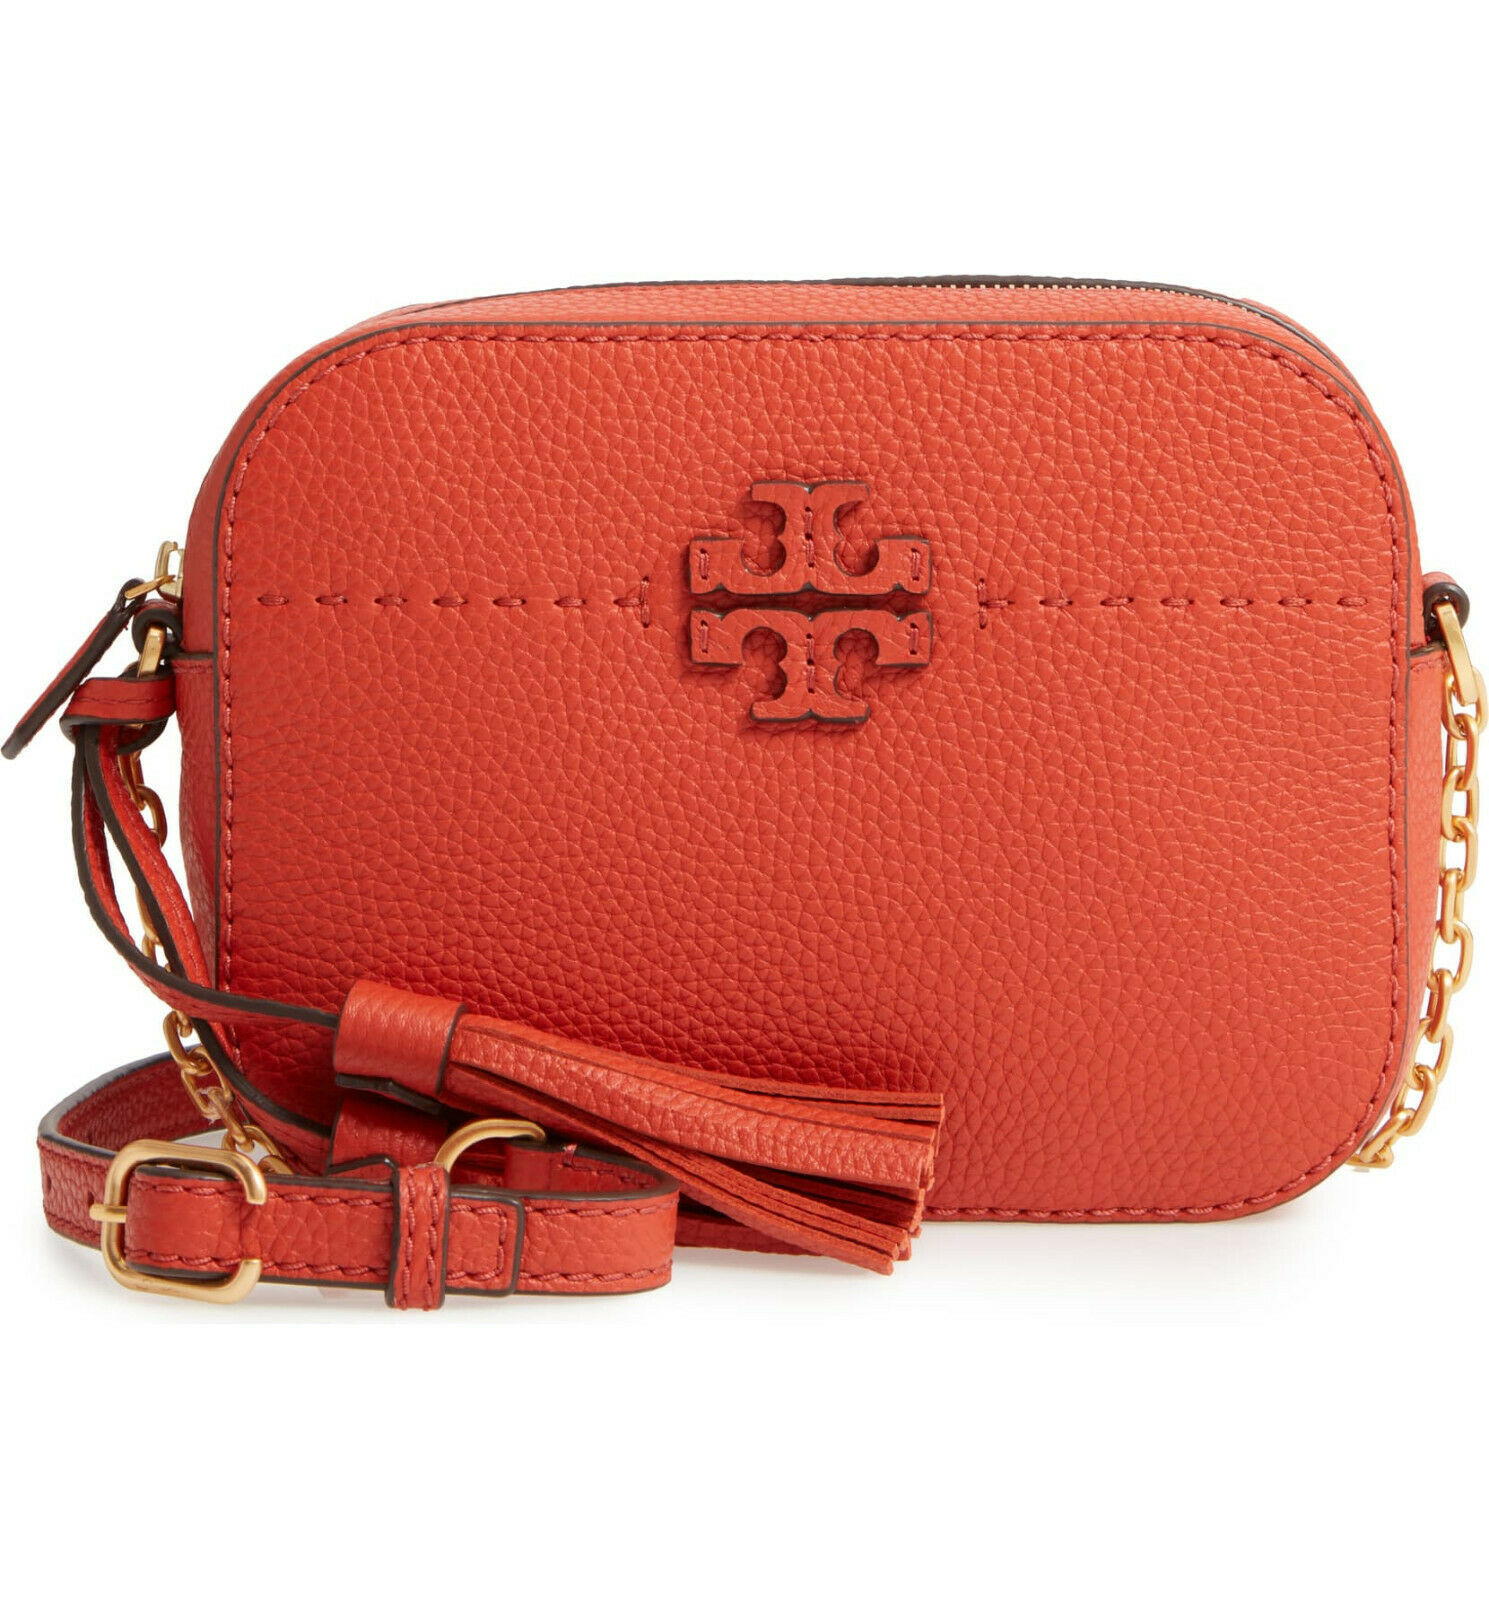 Primary image for NWT Tory Burch McGraw Leather Camera Bag Crossbody Bag Lava Red $300+ AUTHENTIC